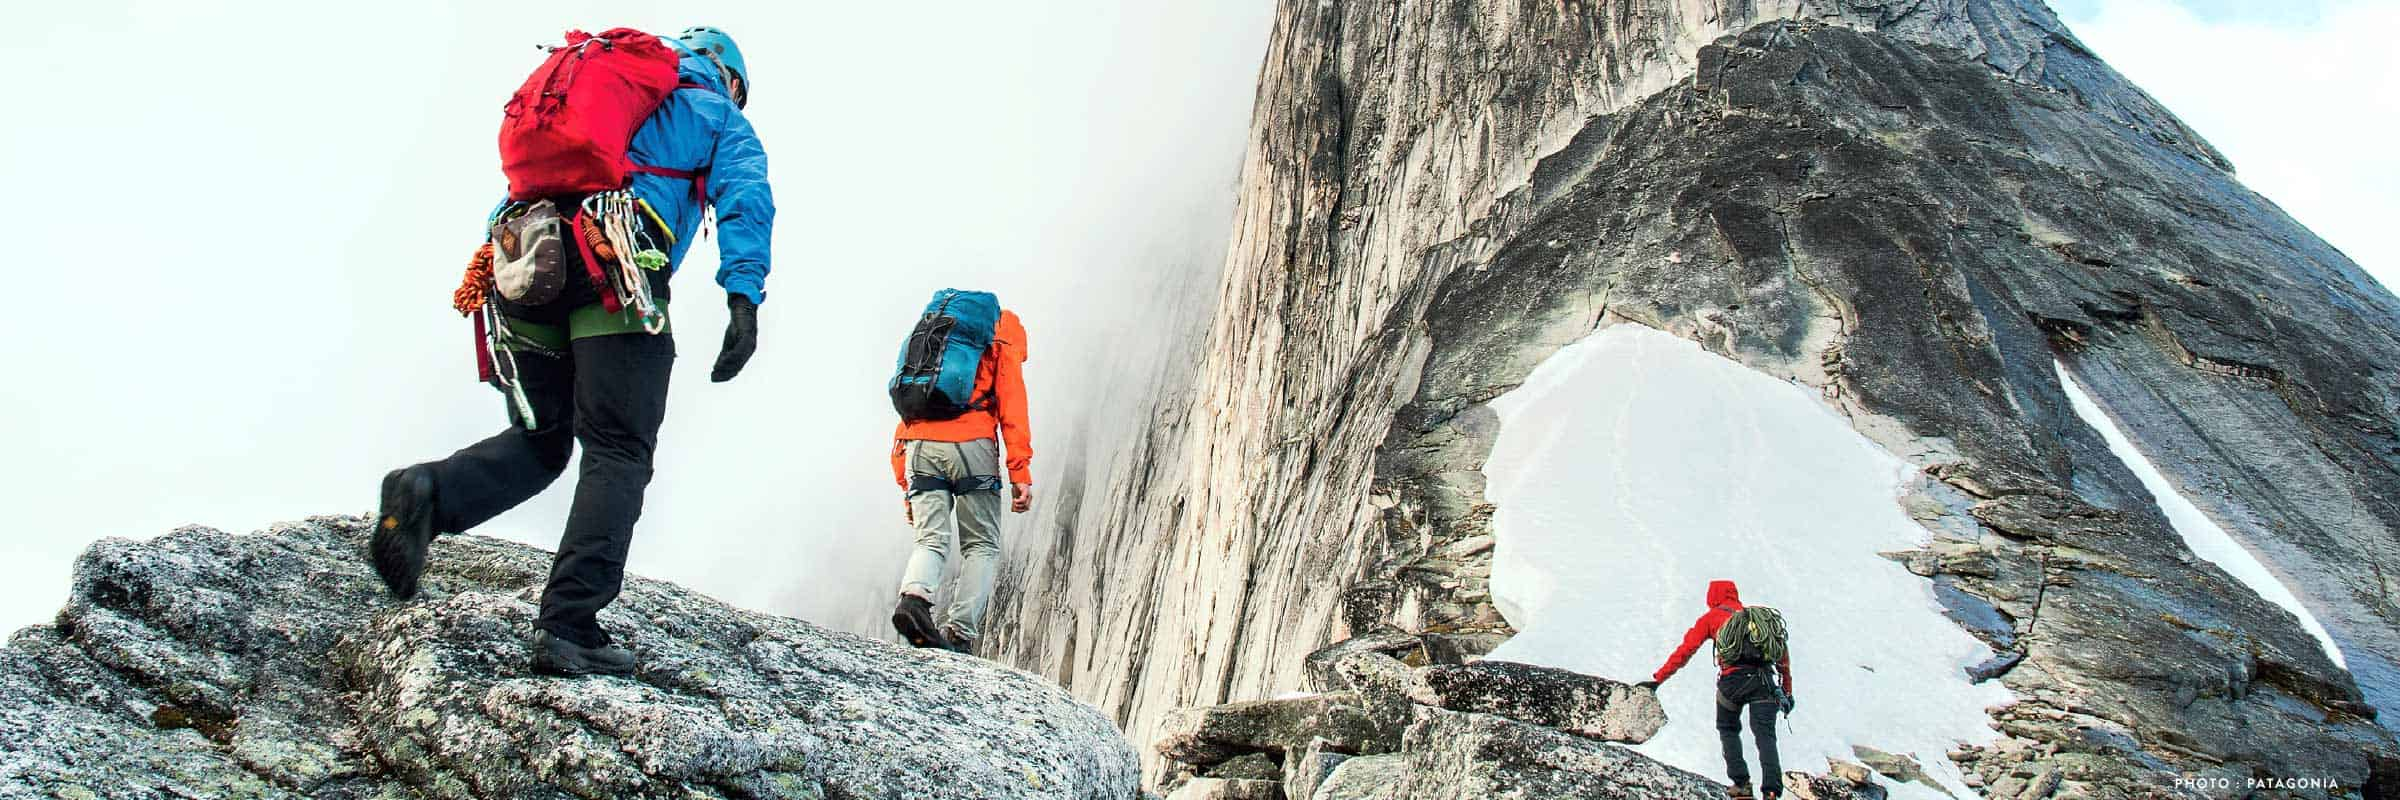 Arc'teryx, Black Diamond, Outdoor Research, Patagonia, The North Face. Ultralight & Packable Windbreakers VS Softshells